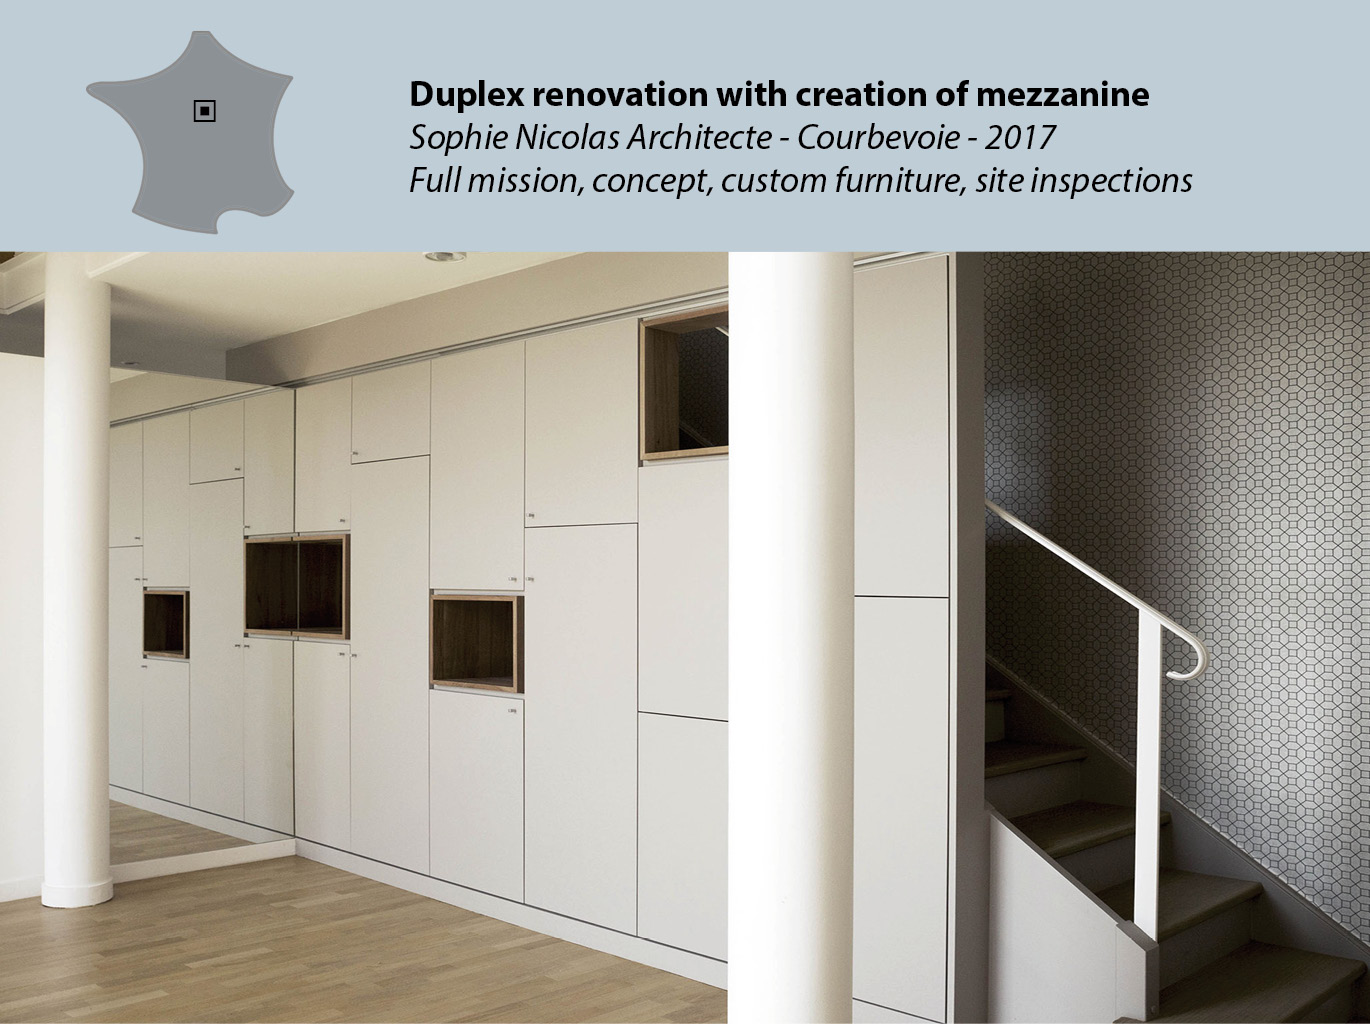 Duplex renovation with creation of mezzanine